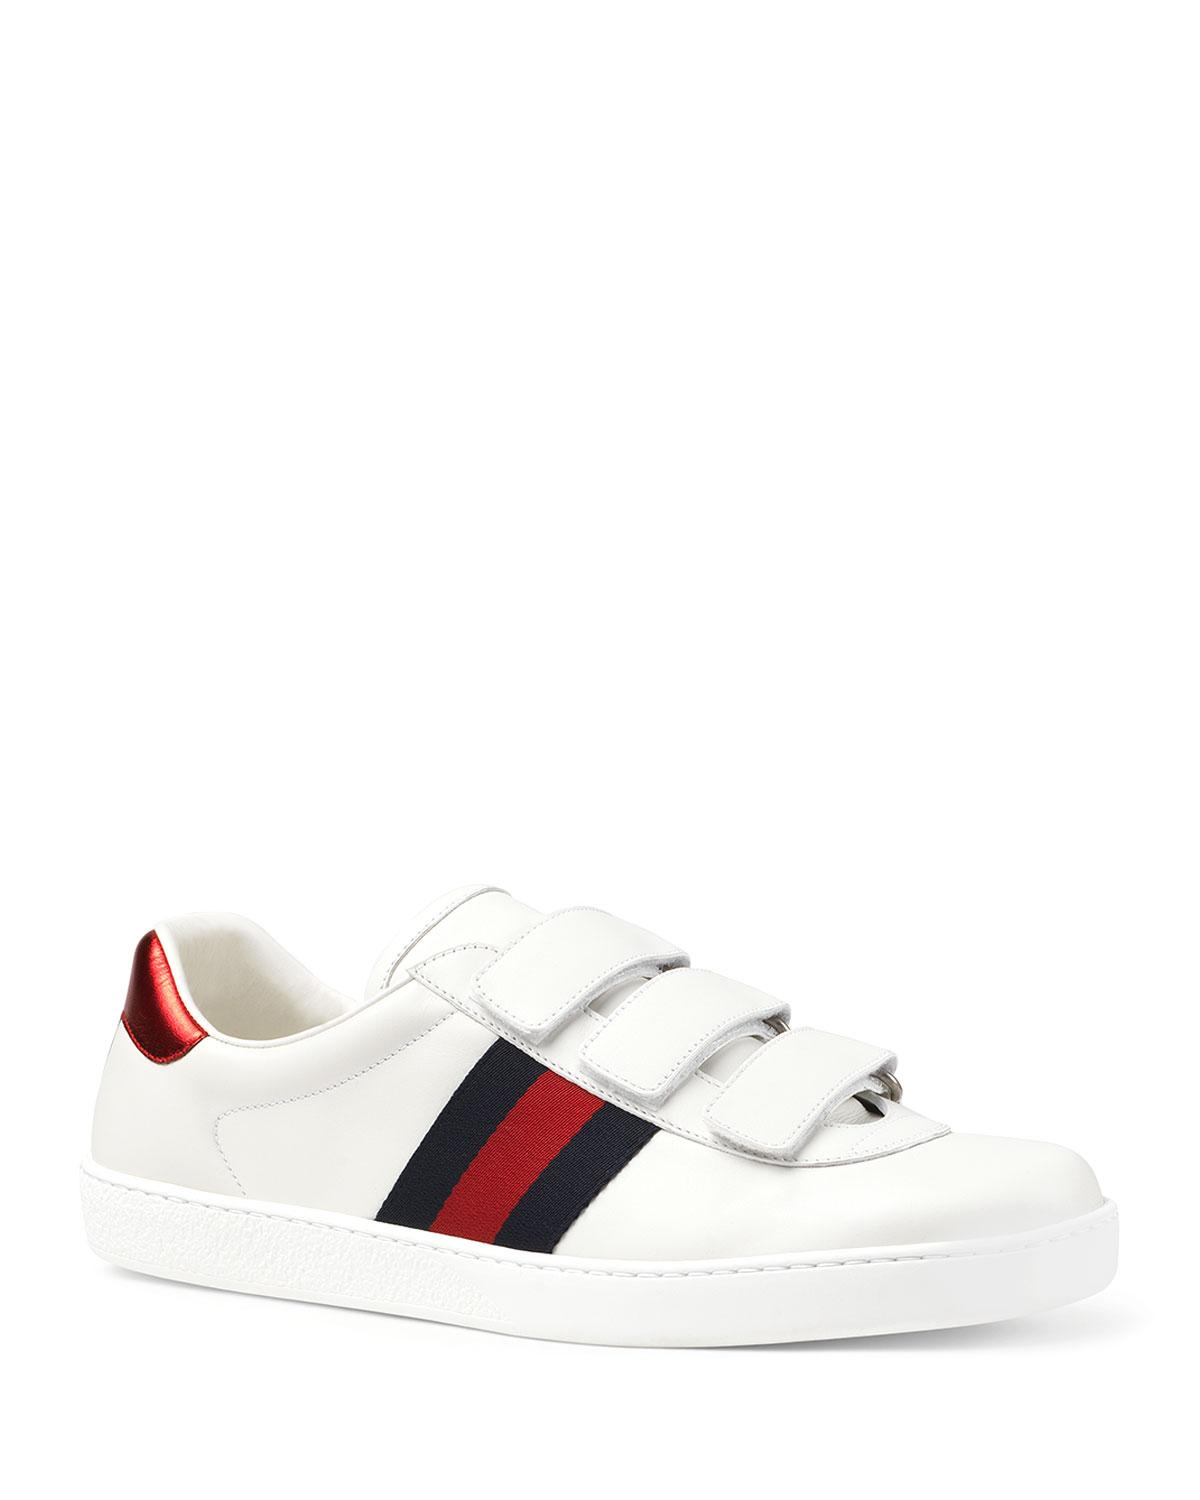 Gucci Men's Leather Grip-strap Sneakers